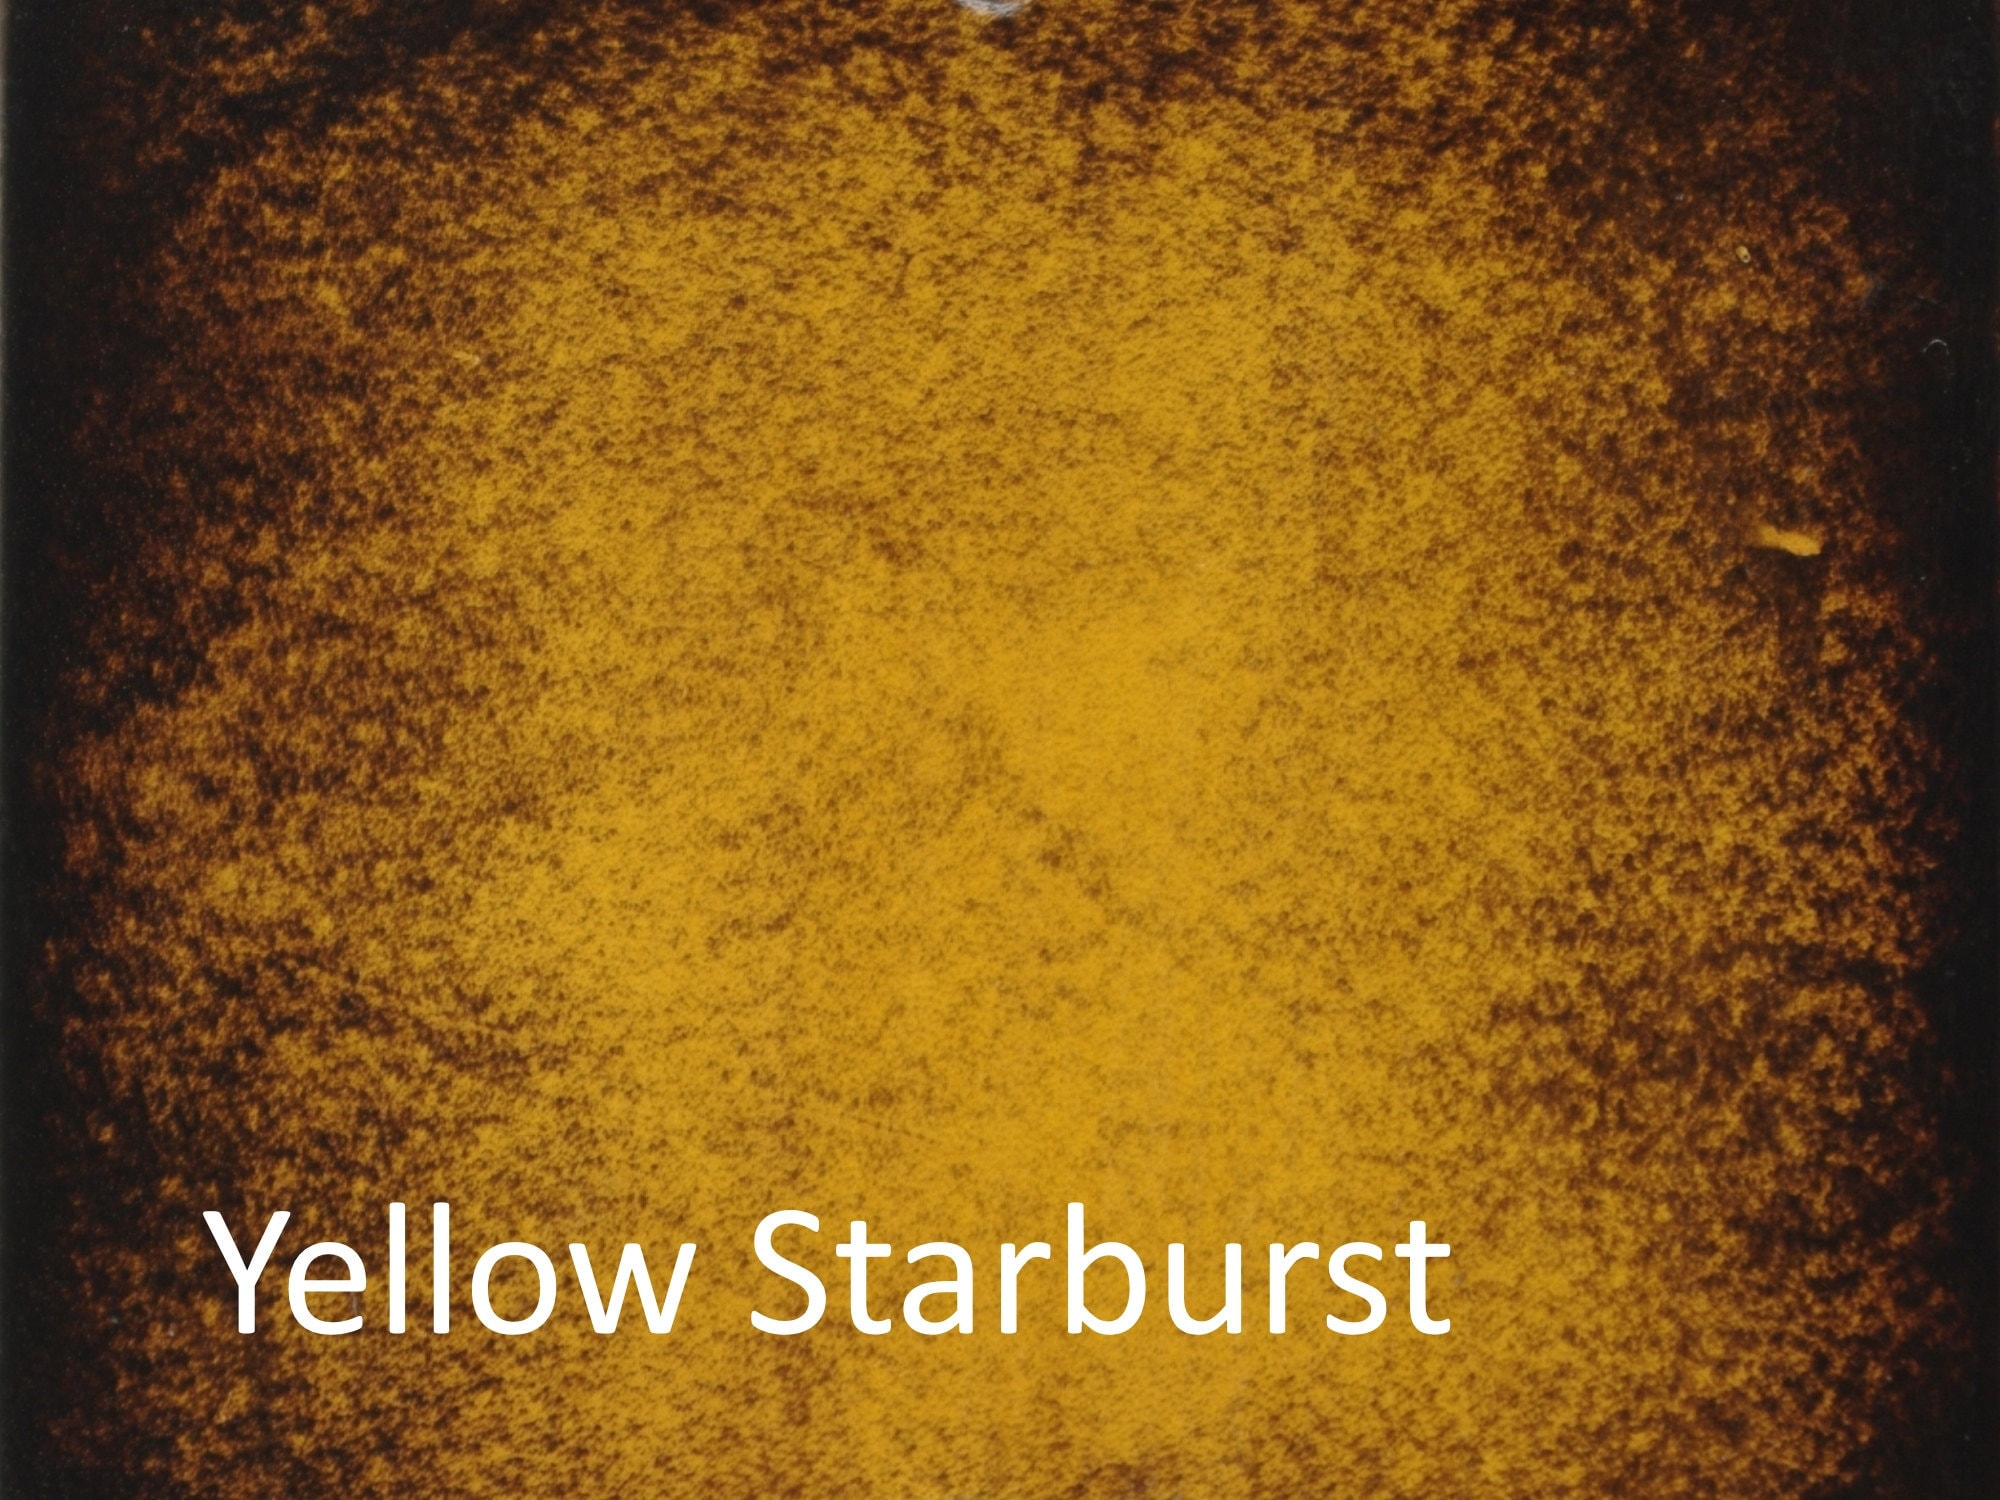 Yellow Starburst